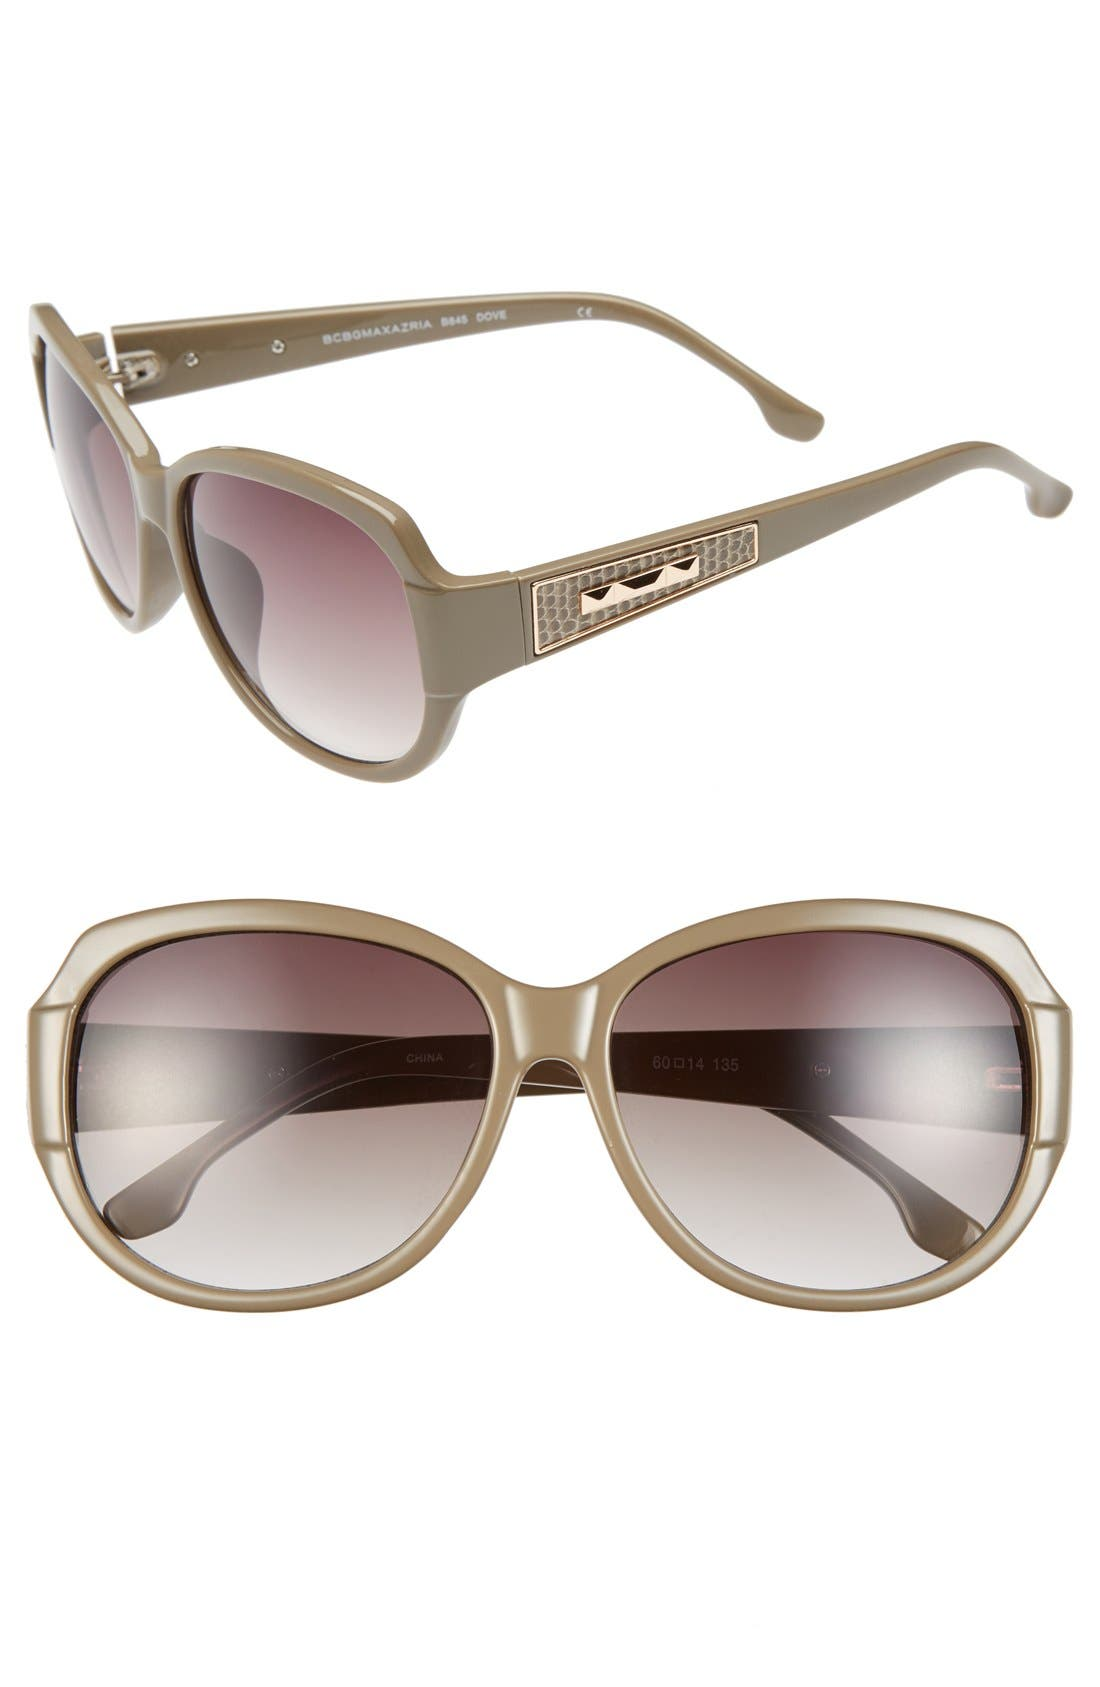 Main Image - BCBGMAXAZRIA 60mm Sunglasses